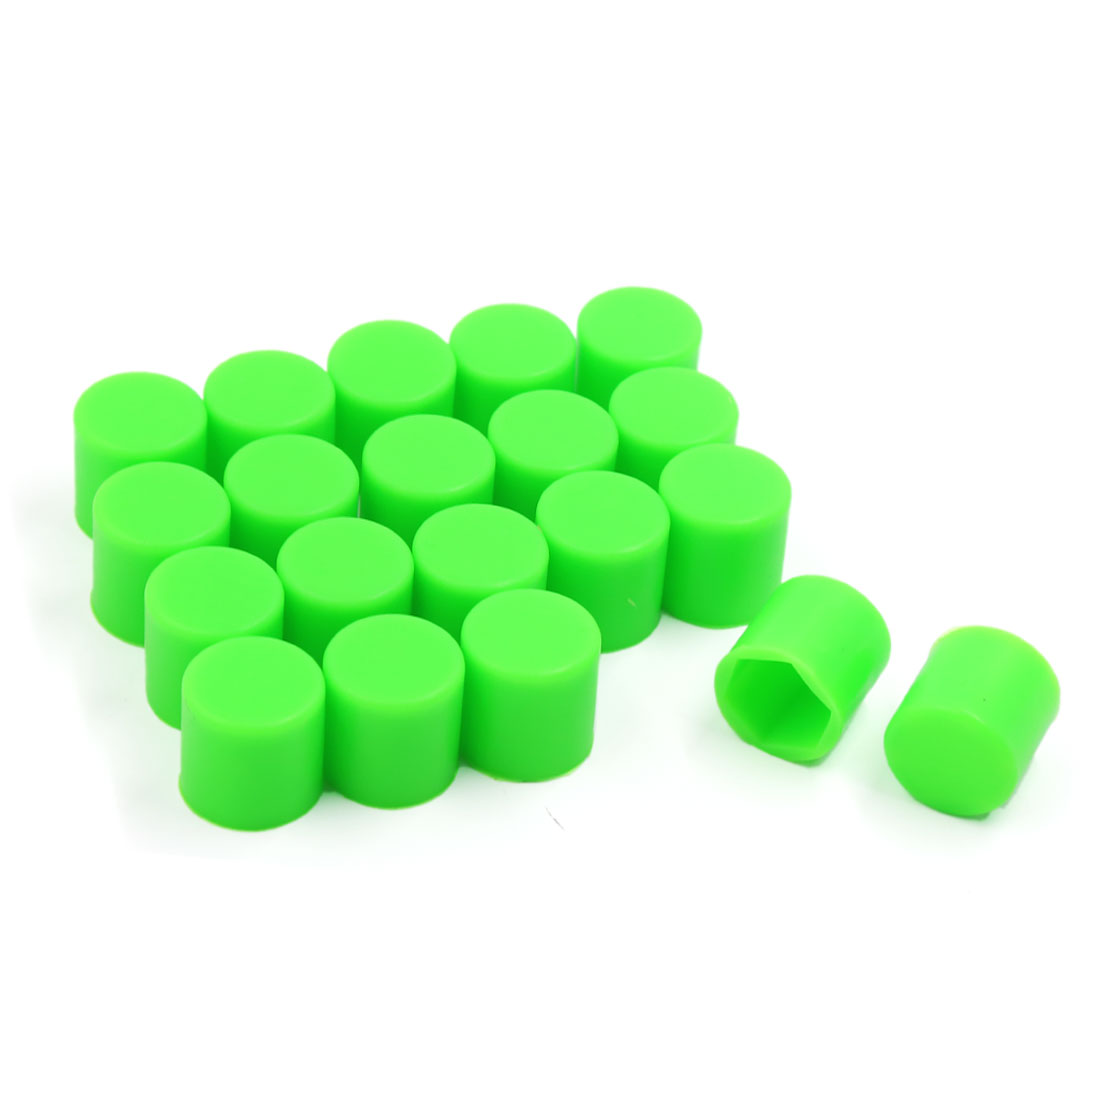 20 Pcs 19mm Auto Car Wheel Lug Nut Dust Cover Hub Bolt Screw Hexagonal Cap Green